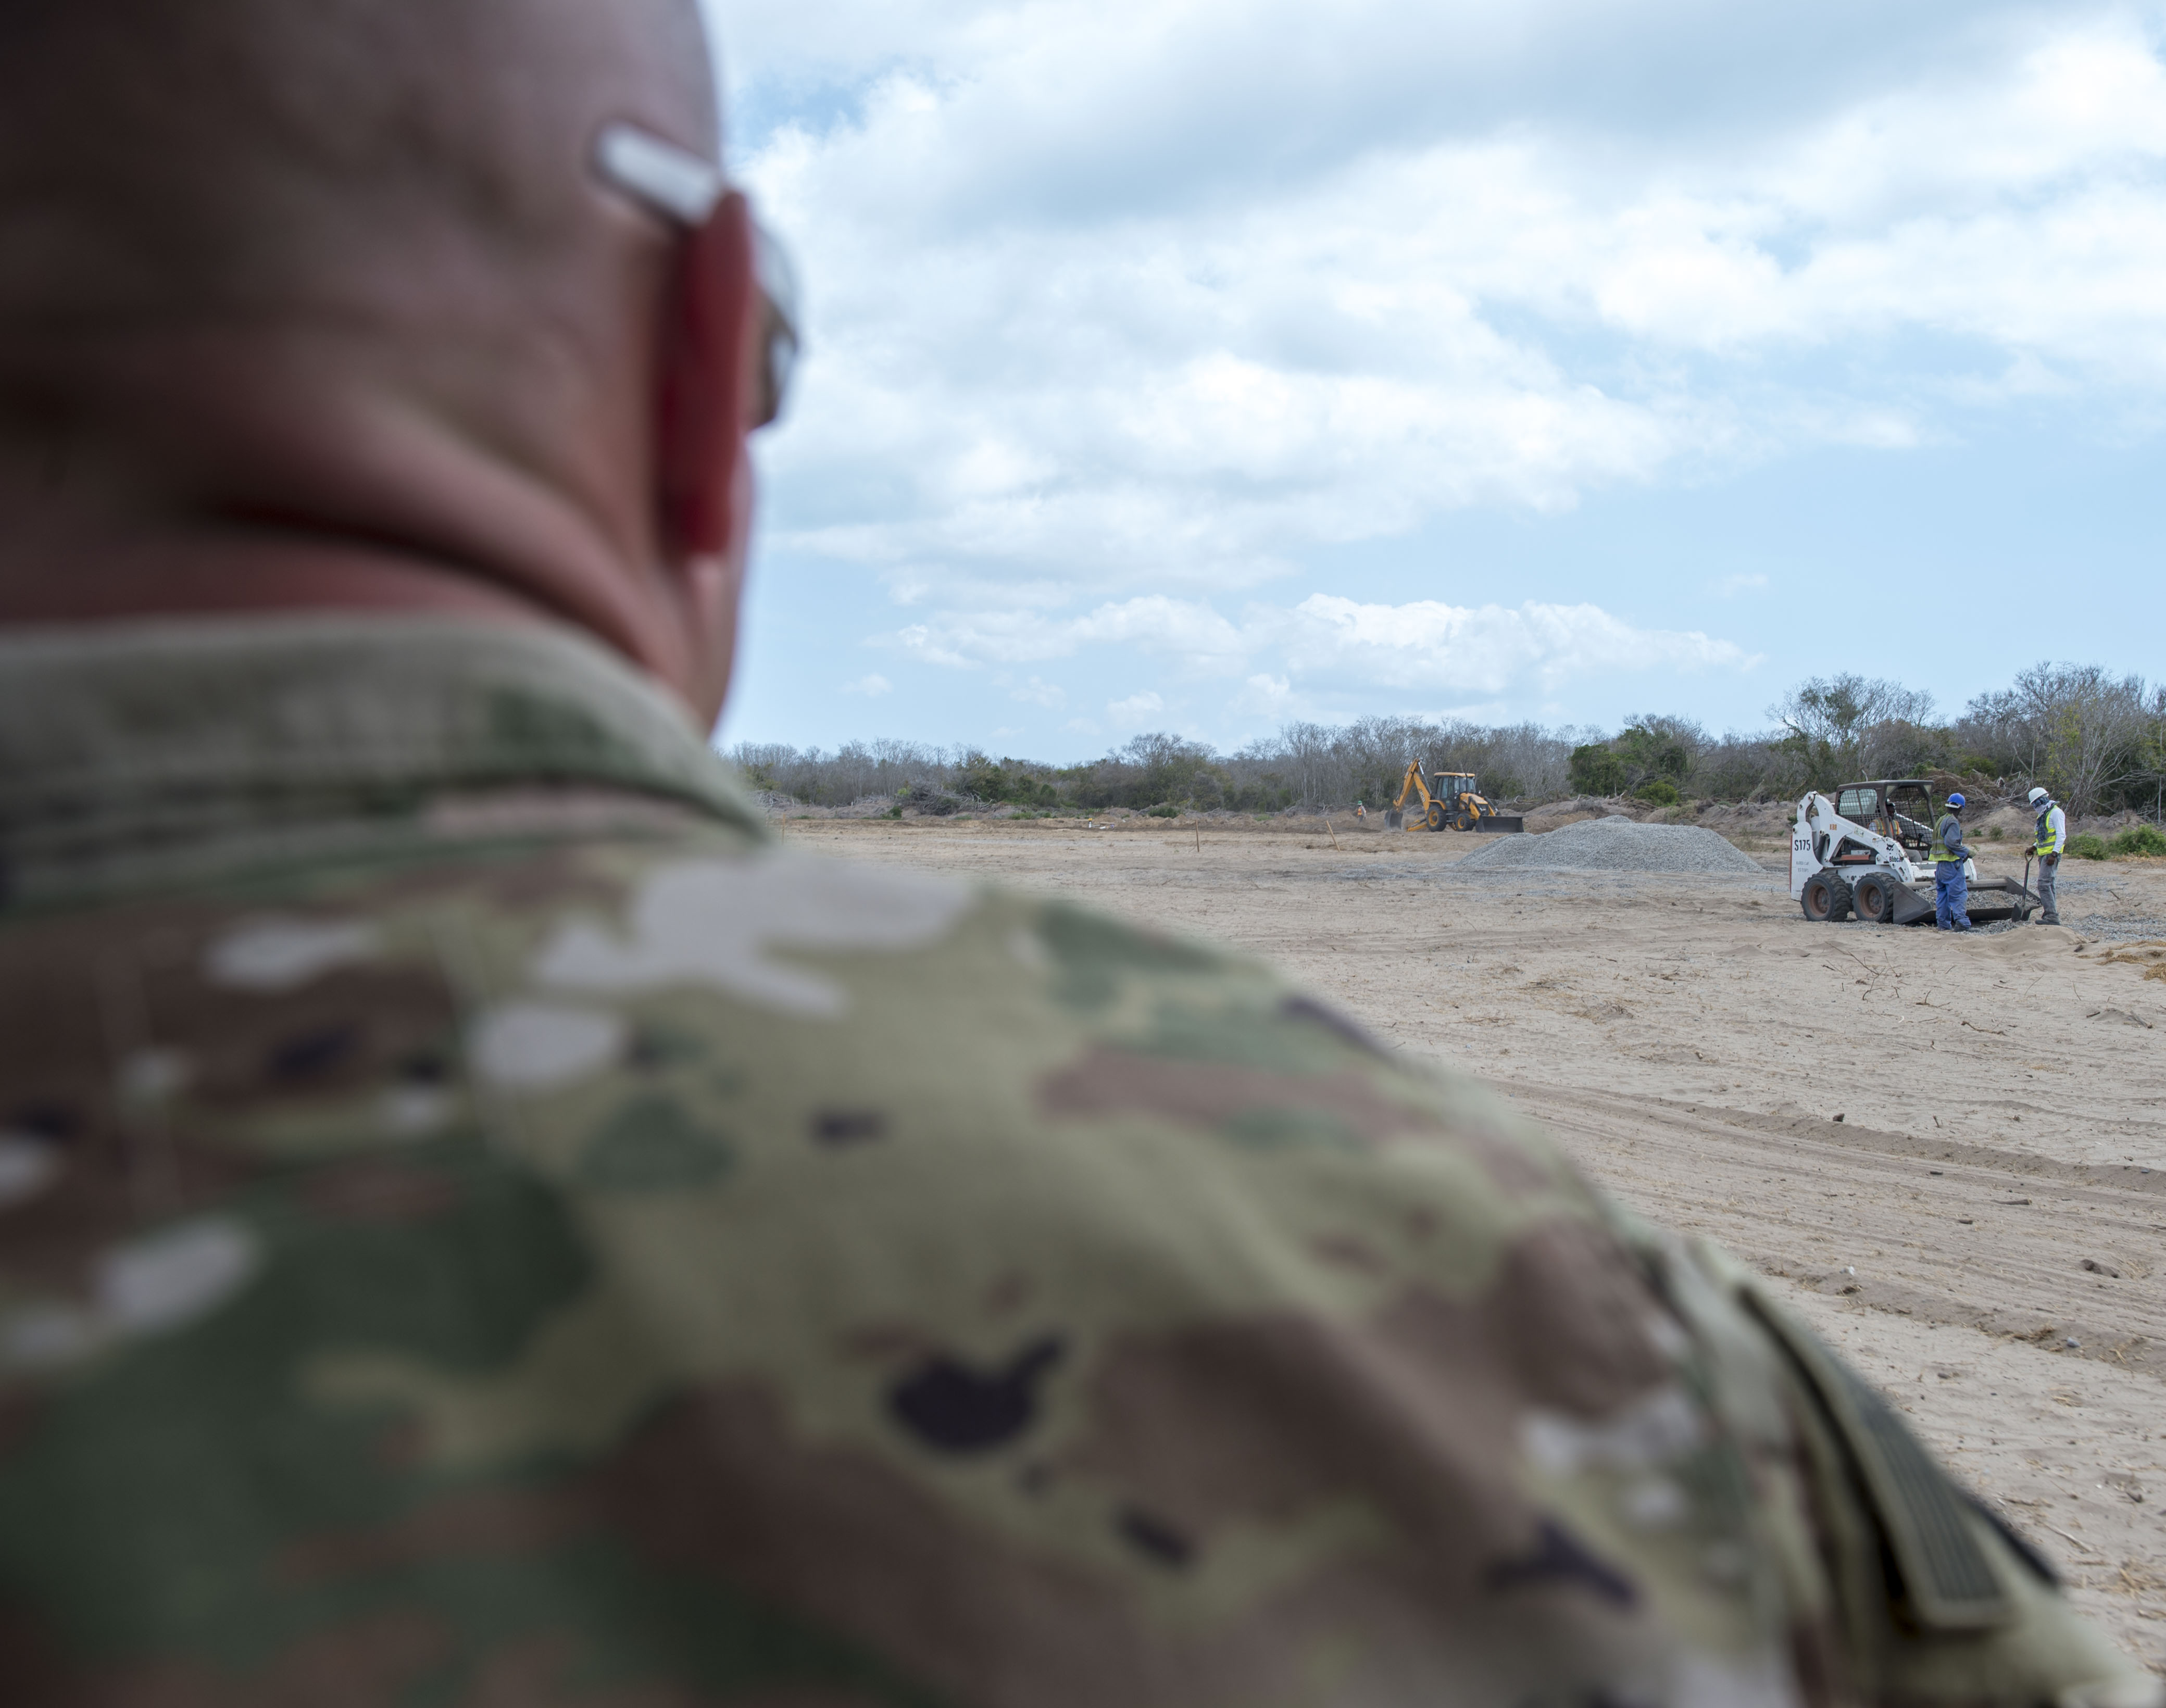 U.S. Army Lt. Col. Todd Martin, safety officer assigned to the Combined Joint Task Force - Horn of Africa (CJTF-HOA) Safety directorate, watches local national workers during a battlefield circulation site visit at Camp Simba in Manda Bay, Kenya, Feb. 24, 2018. The CJTF-HOA Safety and Inspector General directorates provide support to the service members, Department of Defense civilians, and local national and third-country national contractors who work on the camp. Though many of the members at the camp don't fall under CJTF-HOA, many of the concerns that affect the CJTF-HOA personnel also affect them and vice versa. (U.S. Air Force photo by Staff Sgt. Timothy Moore)